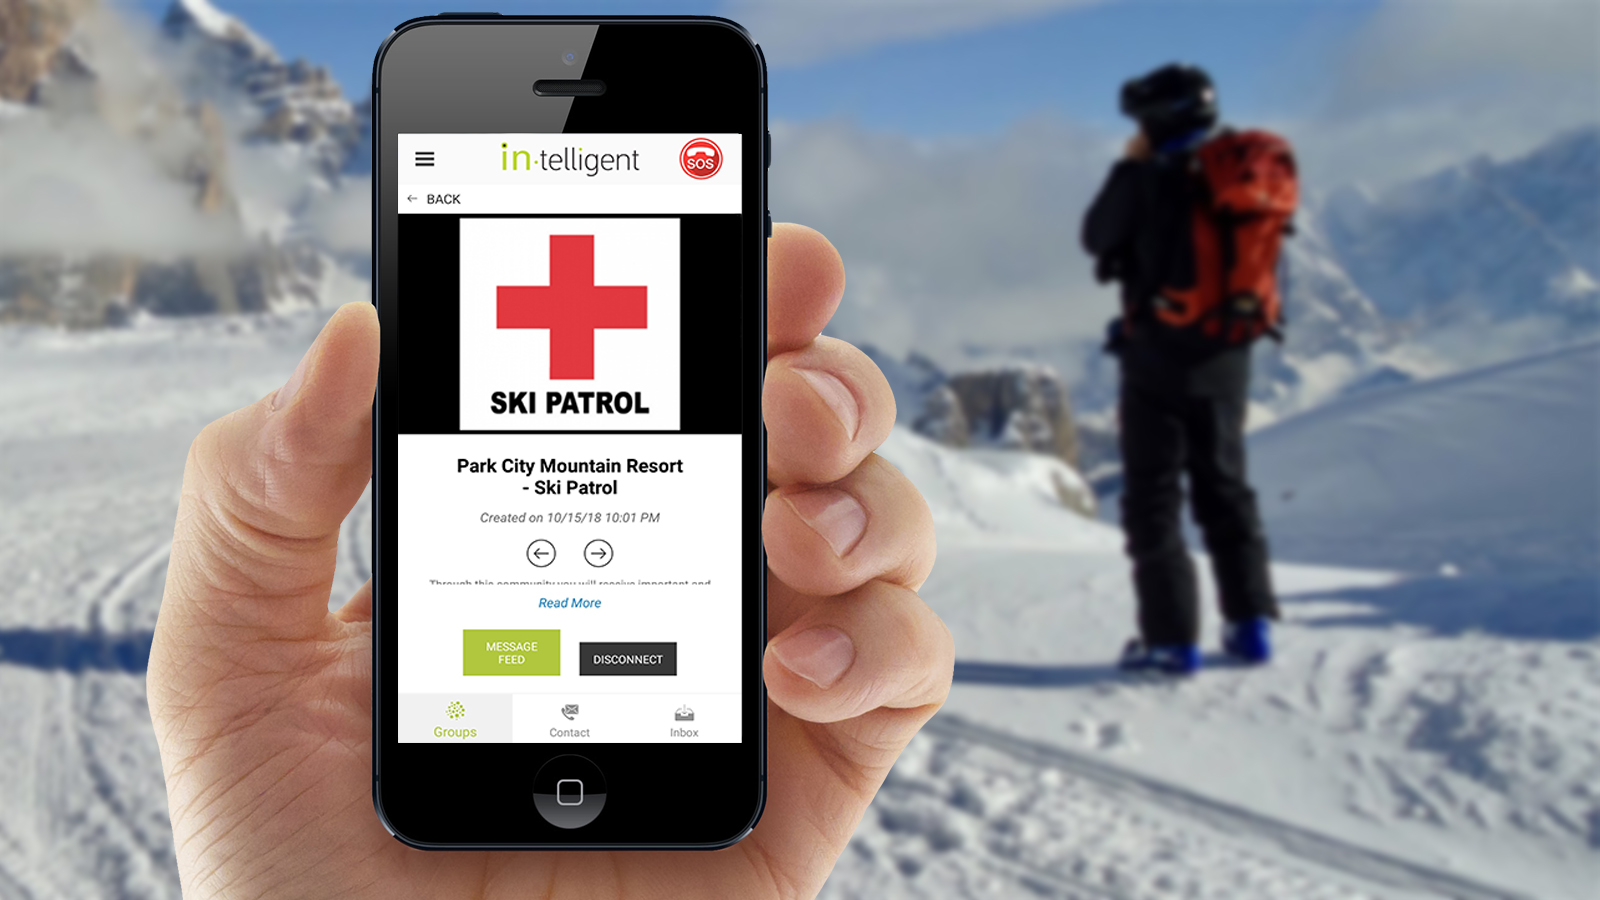 IN-TELLIGENT KEEPS SKIERS AND SNOWBOARDERS SAFE WITH SKICONNECT EMERGENCY CONTACT SERVICE